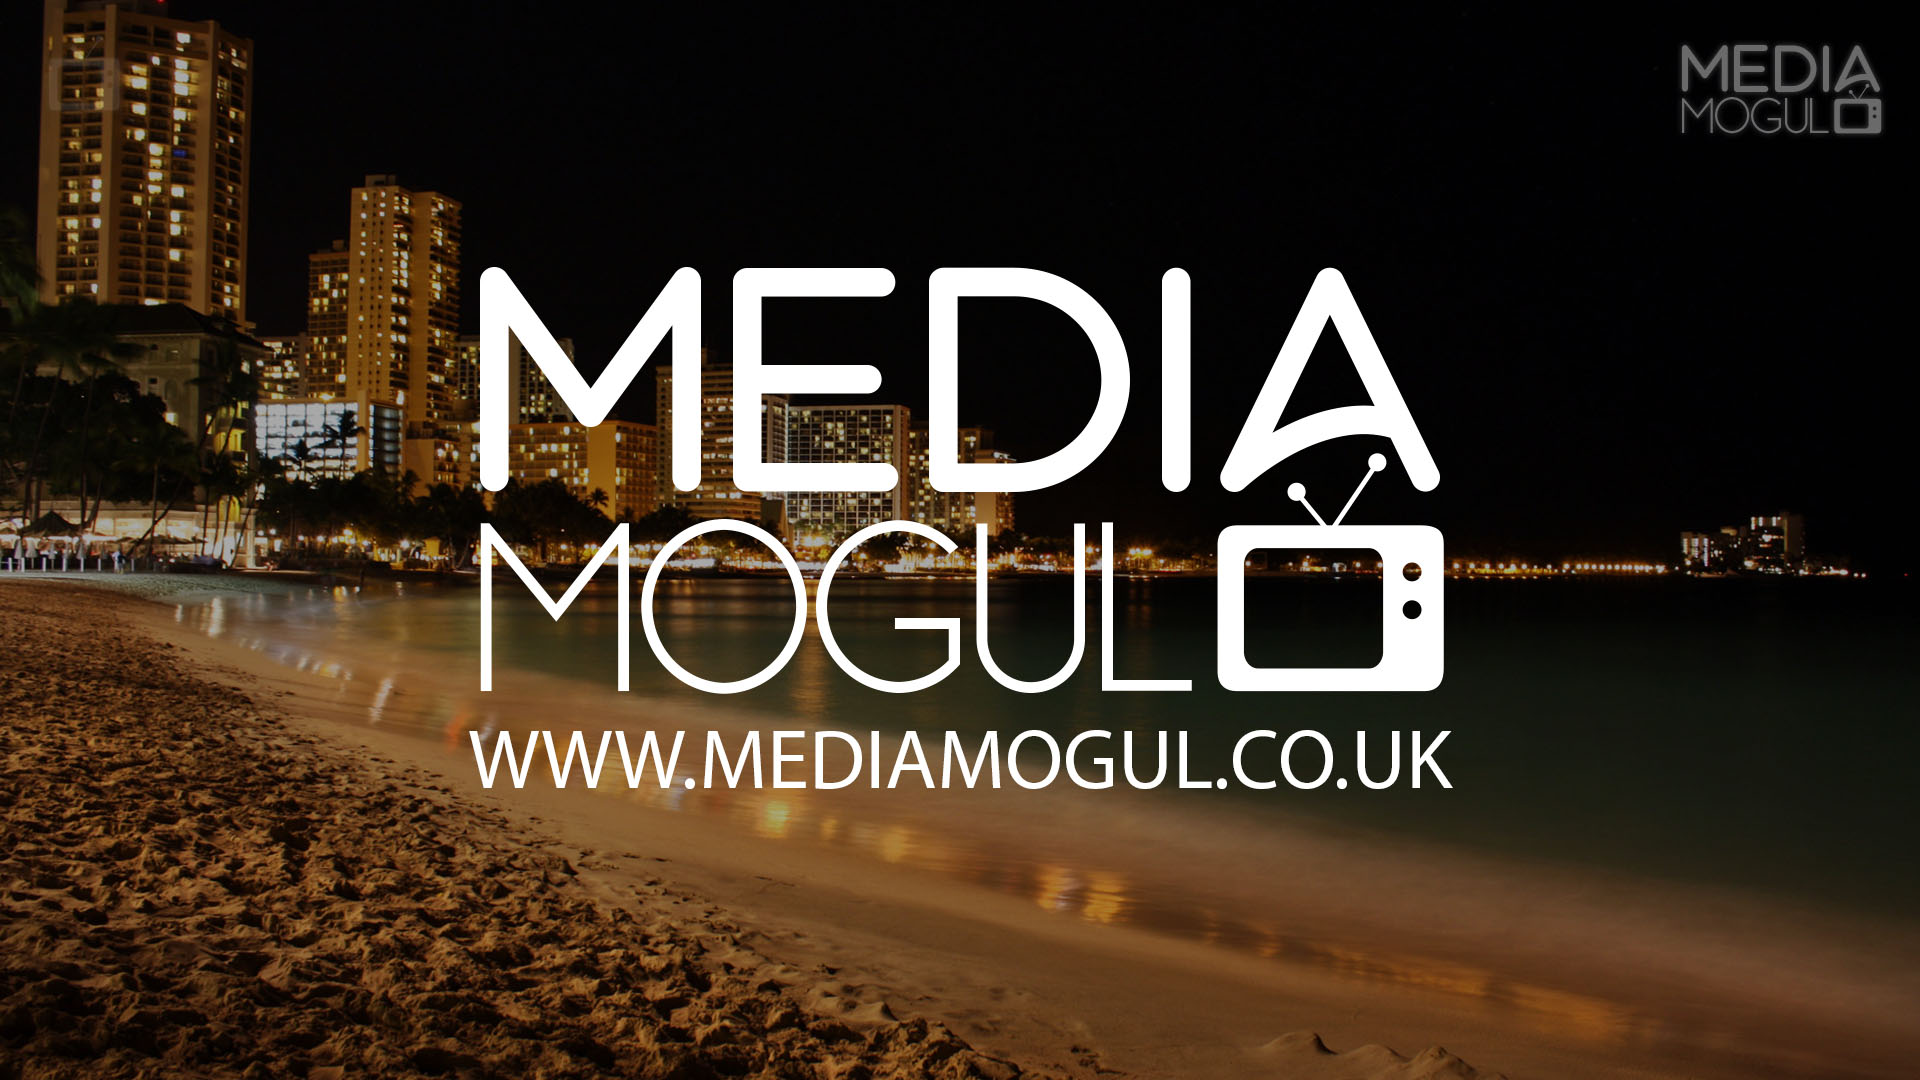 Media Mogul Backdrop 5